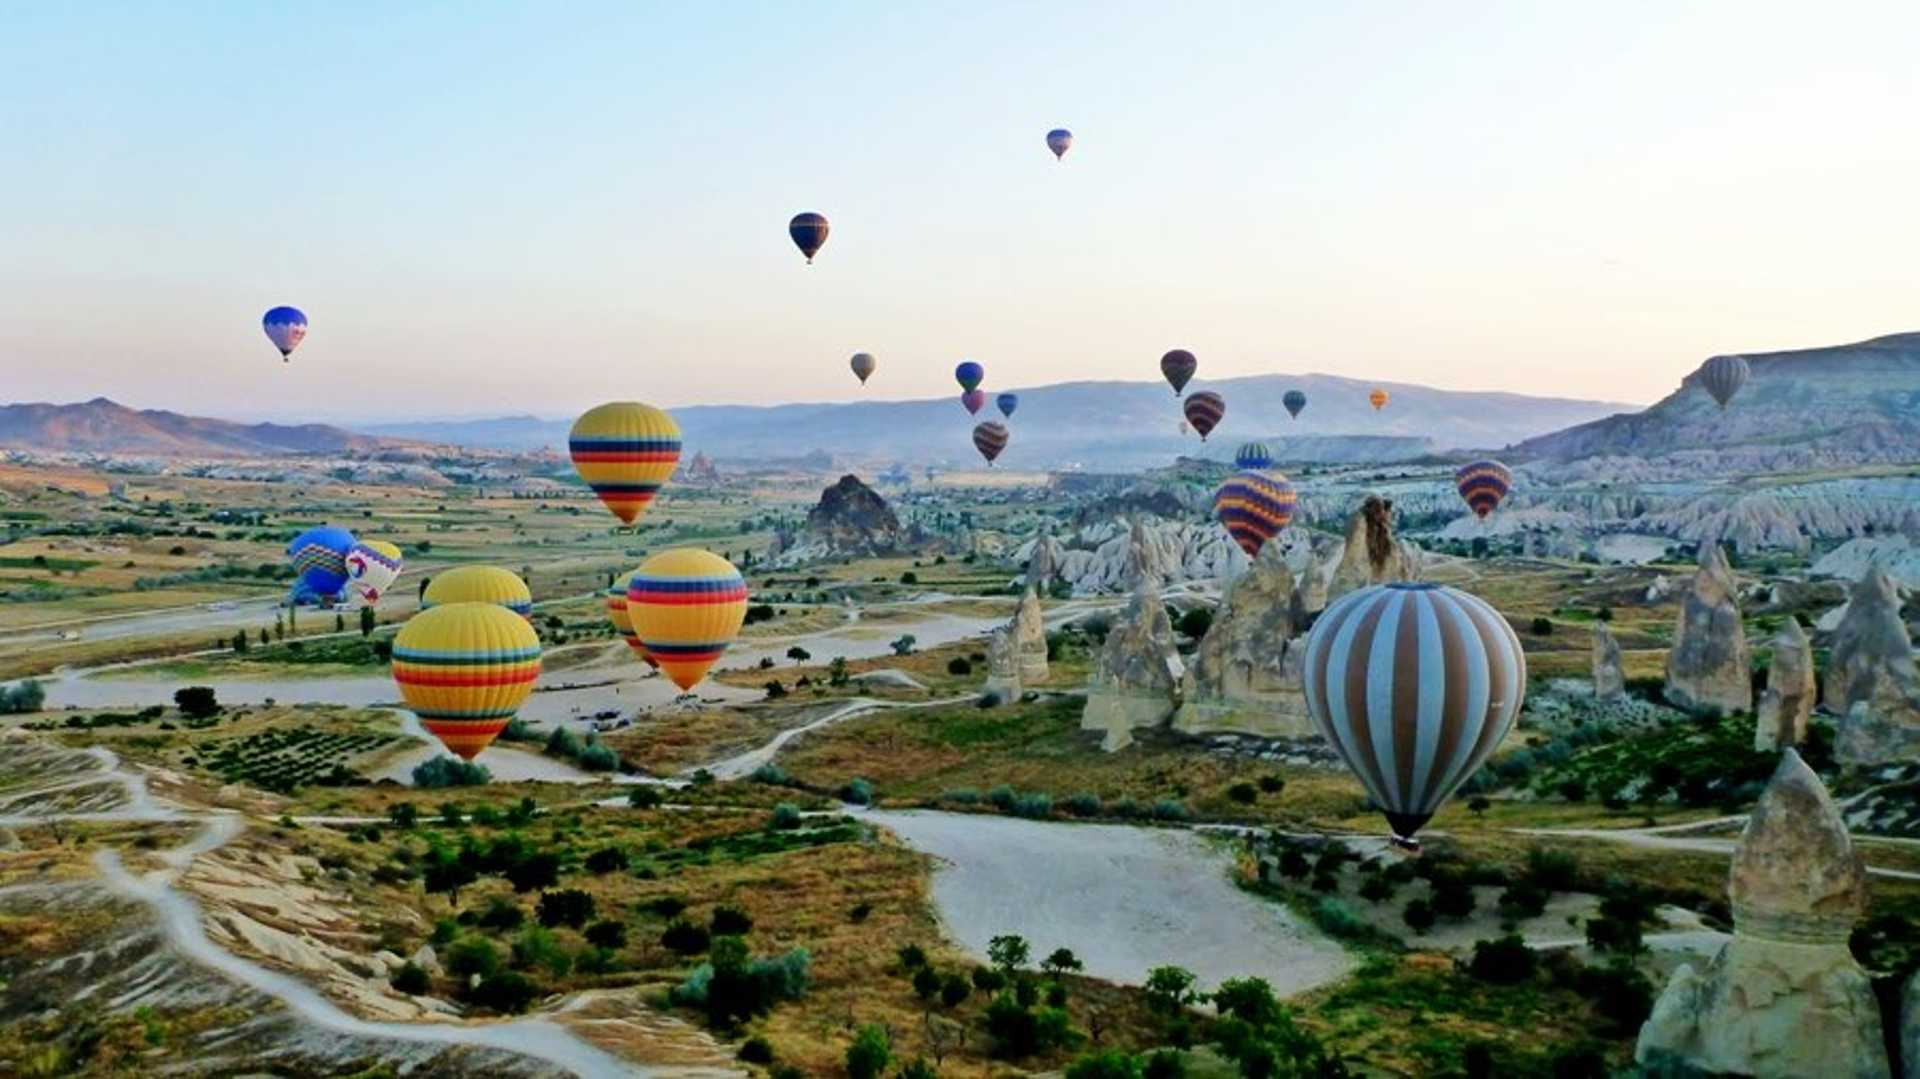 Liberate yourself with a trip to Cappadocia, Turkey